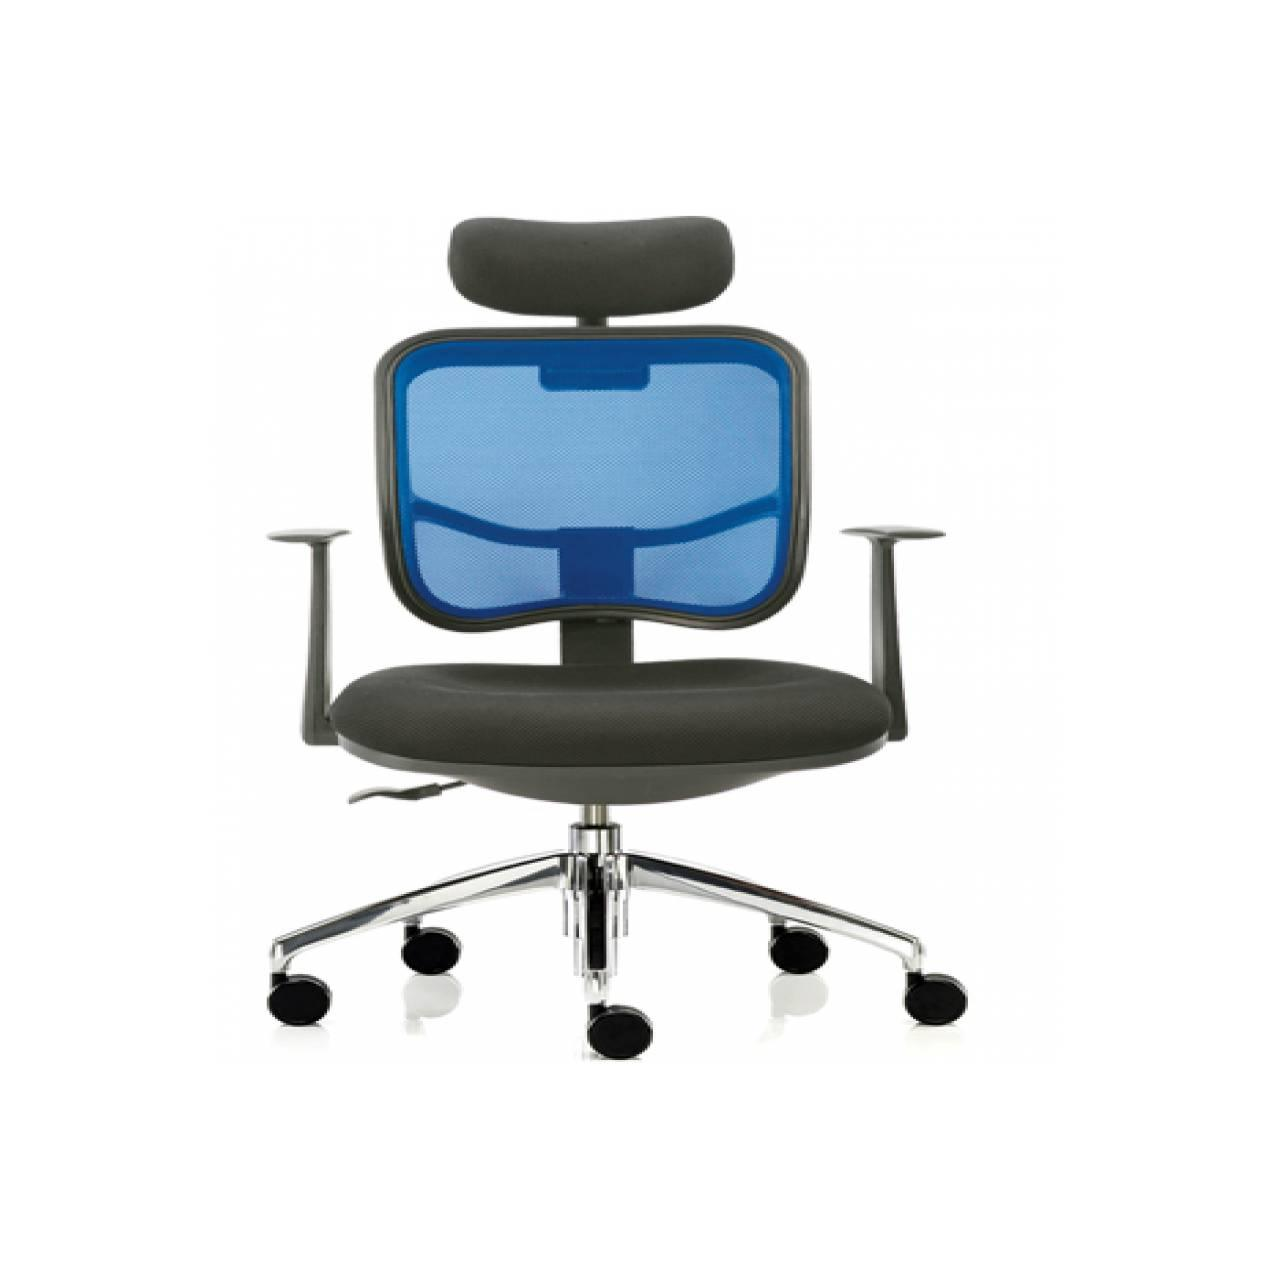 Kursi kantor Donati model jaring modern stylish kaki chrome& headrest